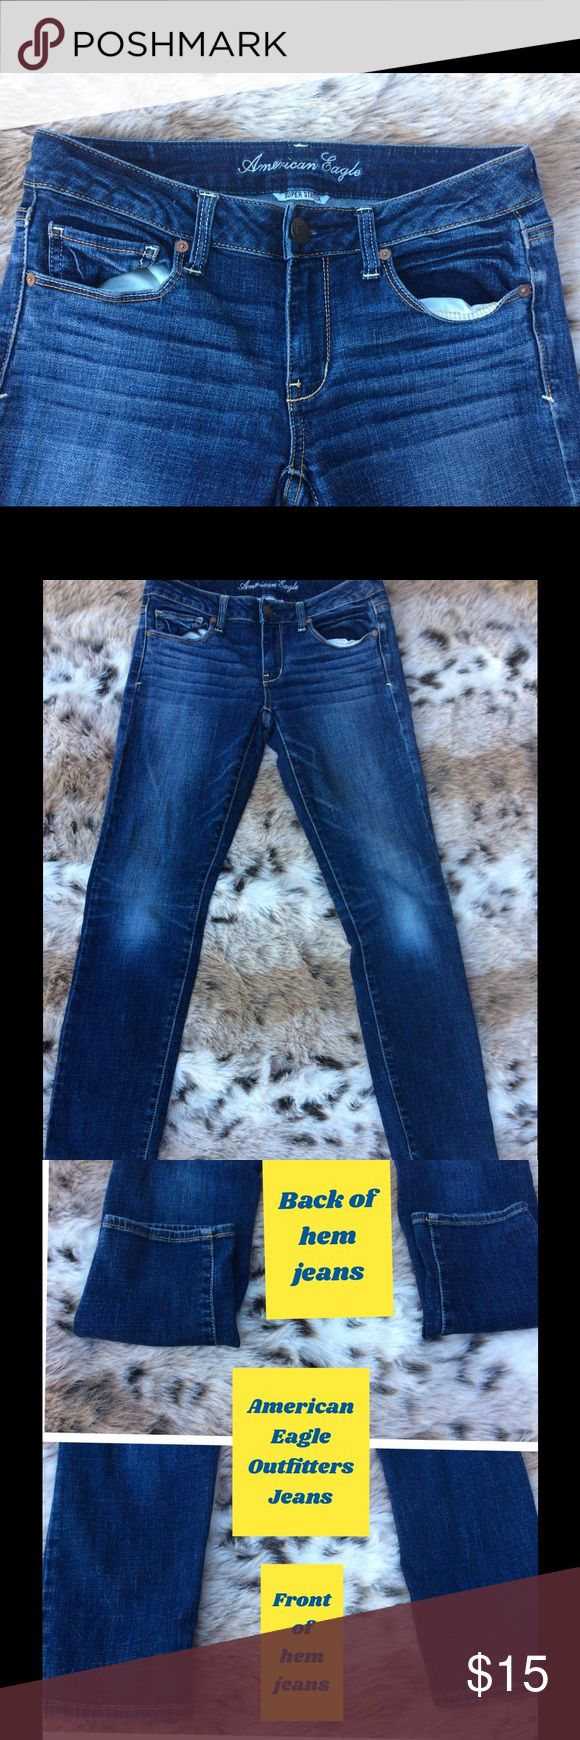 American Eagle Outfitters Size 6 Short Jeans👖 American Eagle Outfitters jeans Size 6 Short Skinny fit Super Stretch Style # 2936884495 Rn# 54485 CA# 03873 made out of 99% Cotton and 1 % Spandex look at pic # 3 shows front not and back of jean bottom hem - pic#4 shows some areas of wear and one one spot on the left leg- measurements-1:) Hips- 15 11/16, 2:) Inseam- 29 3/4, 3:) Outseam-37 5/16, 4:) Leg Opening - 5 3/16, 5:) Front Rise-7 1/2, 6:) Back Rise- 12, 7:) Hips-30 - good condition…